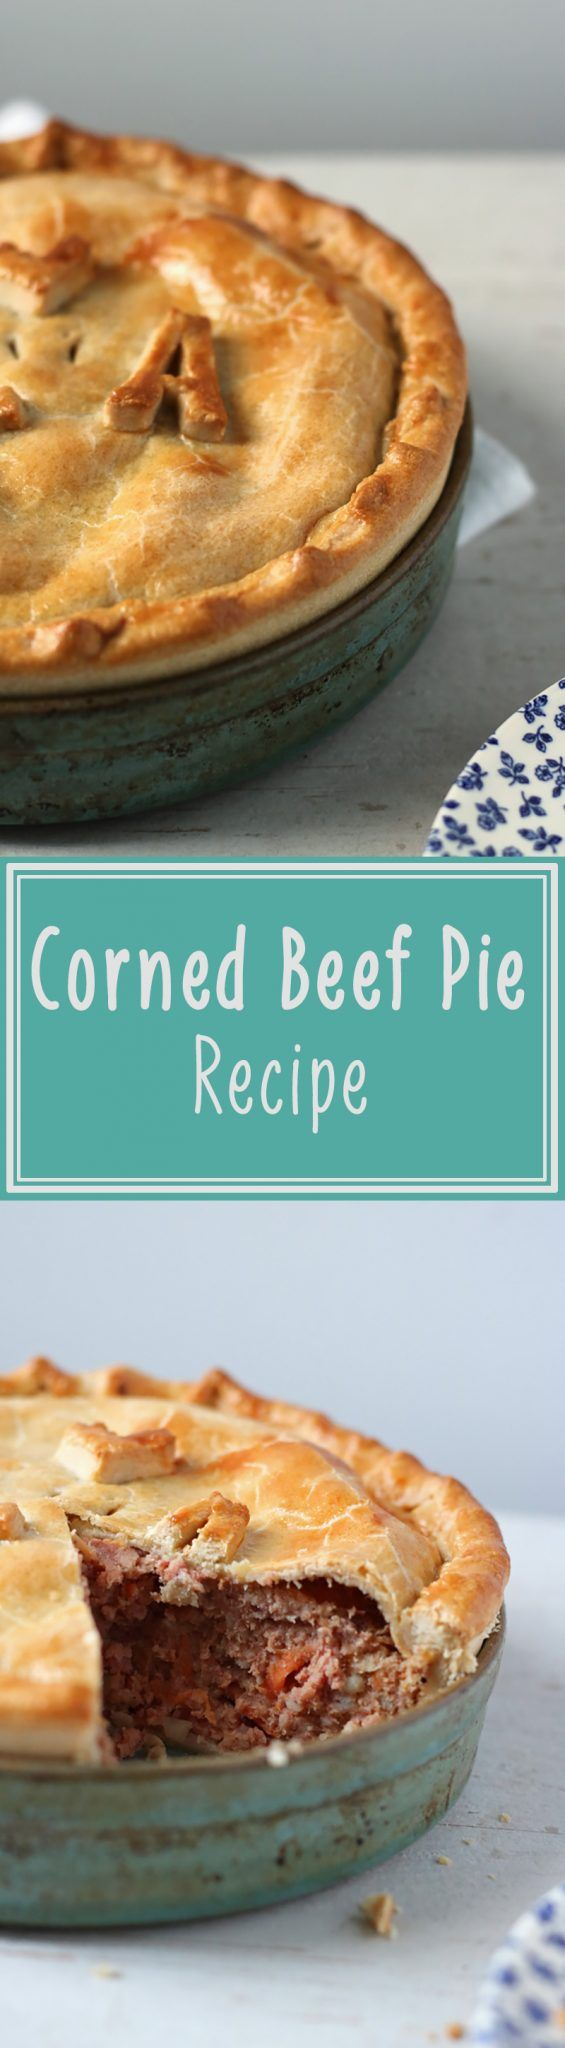 Taking something as cheap and simple as corned beef (or bully beef) and turning it into something delicious. This corned beef pie recipe is a classic.